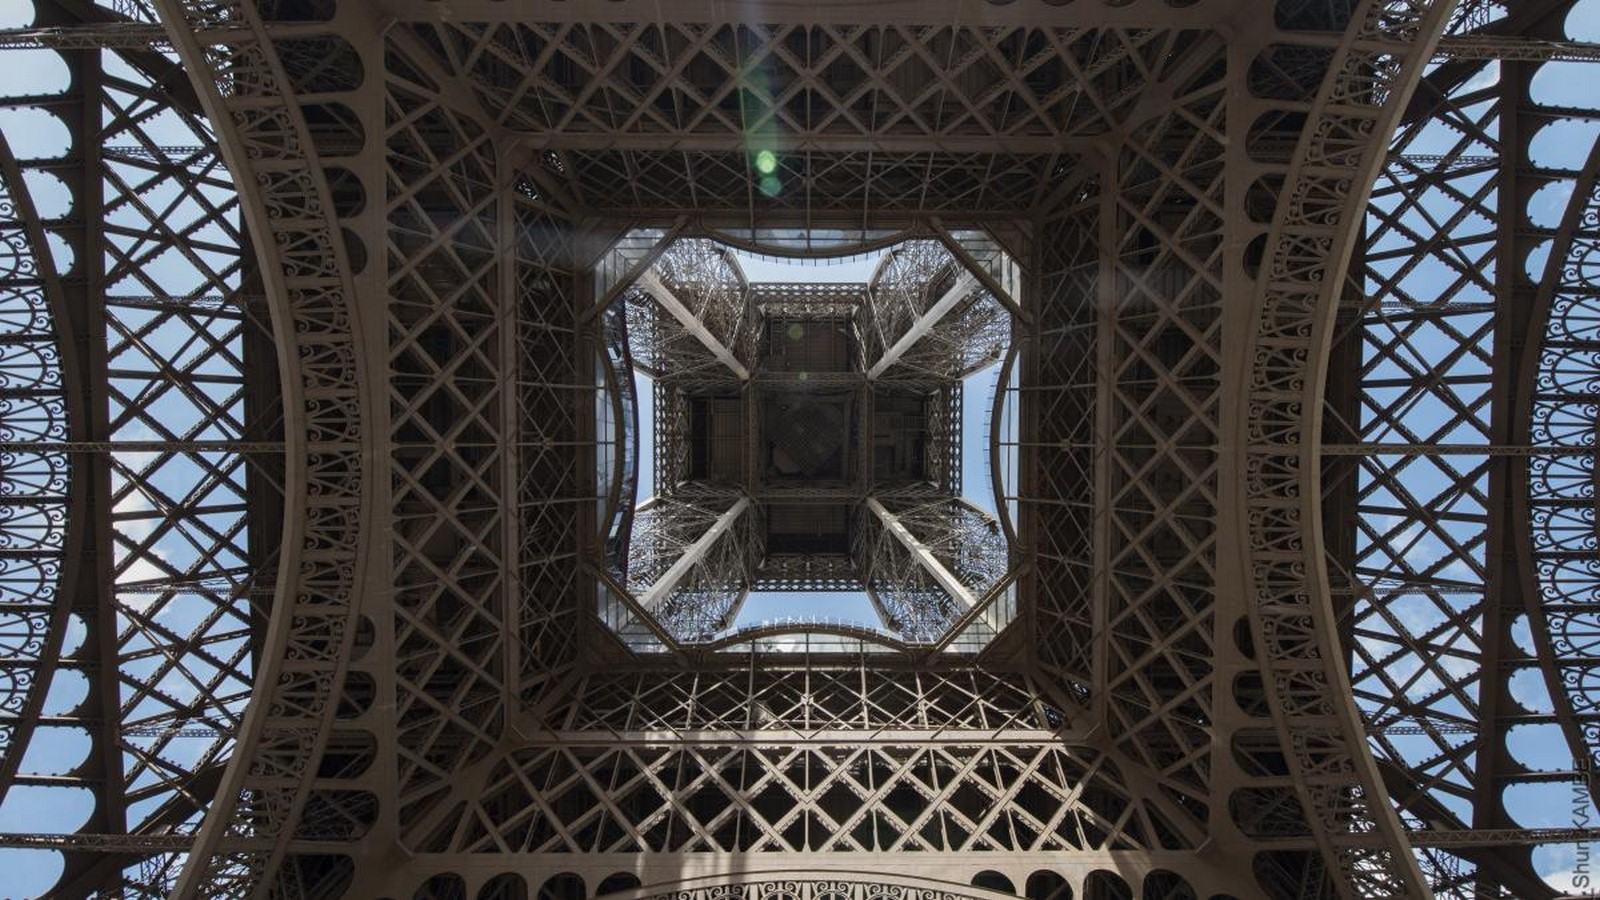 10 Things you did not know about Eiffel Tower - Sheet14